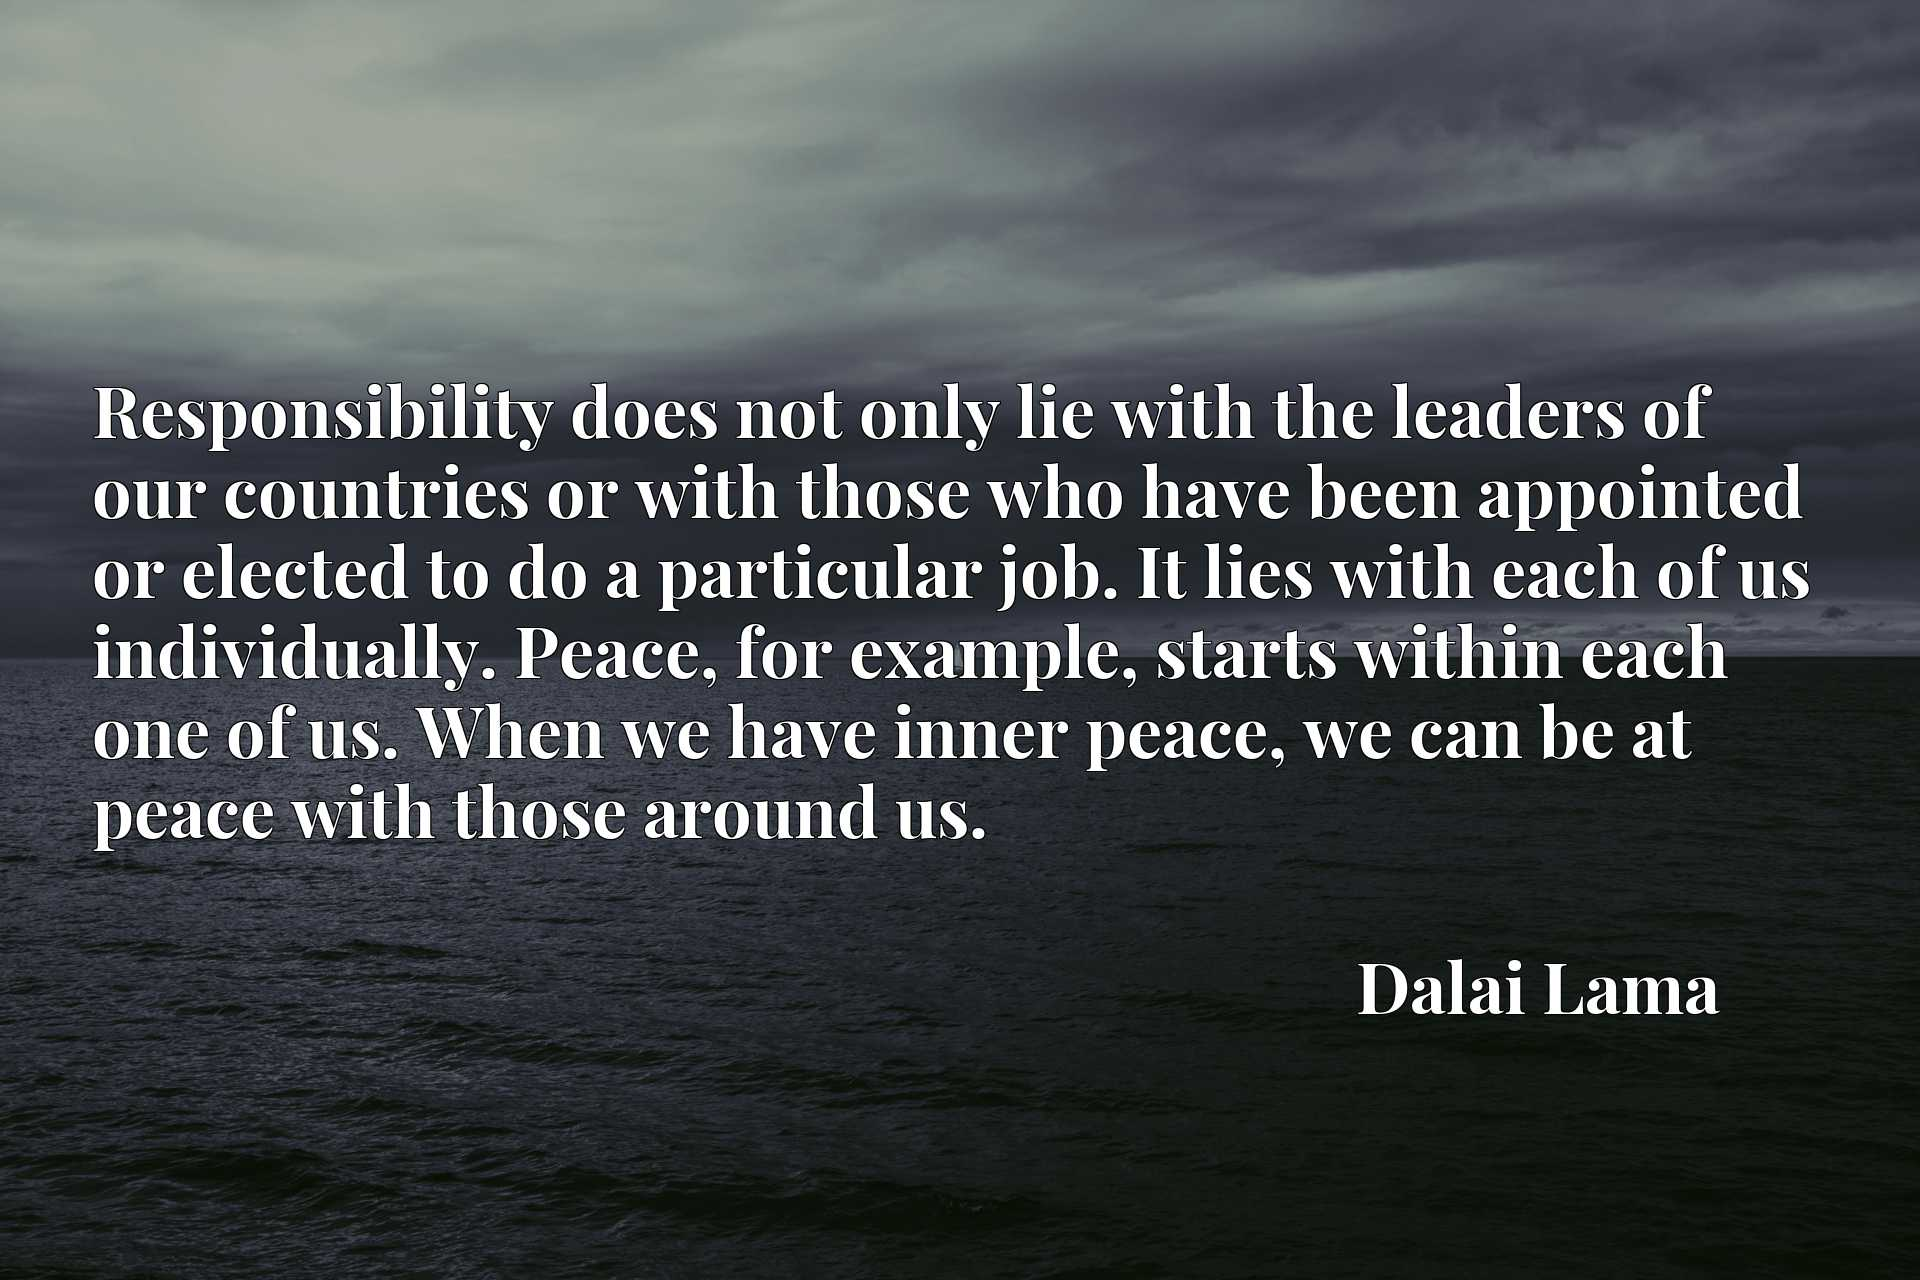 Responsibility does not only lie with the leaders of our countries or with those who have been appointed or elected to do a particular job. It lies with each of us individually. Peace, for example, starts within each one of us. When we have inner peace, we can be at peace with those around us.